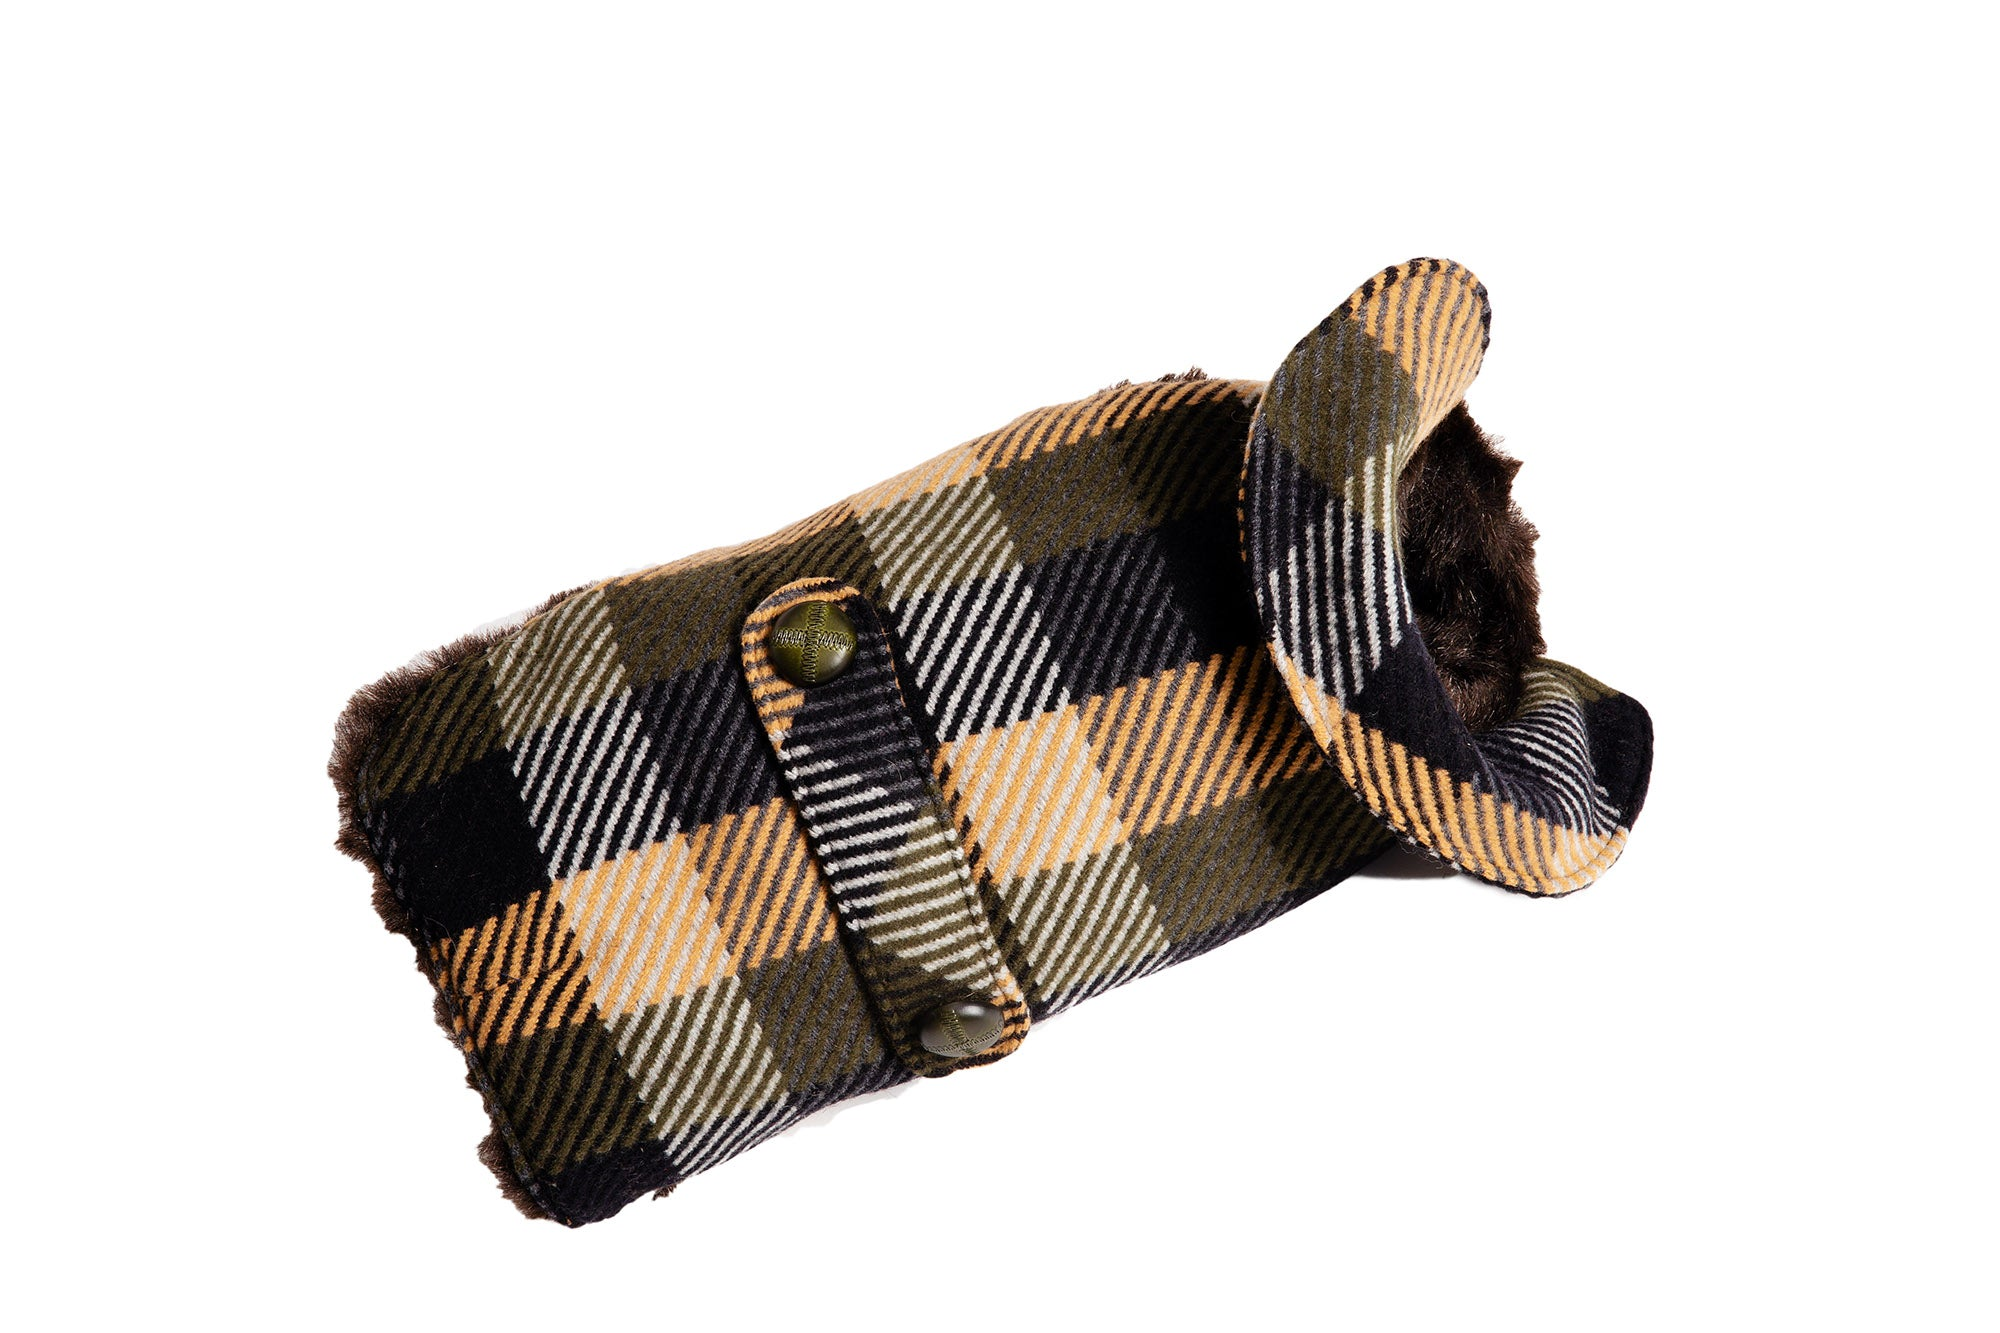 Dog Carrier & Coat - Blue, Green & Tan Wool Plaid